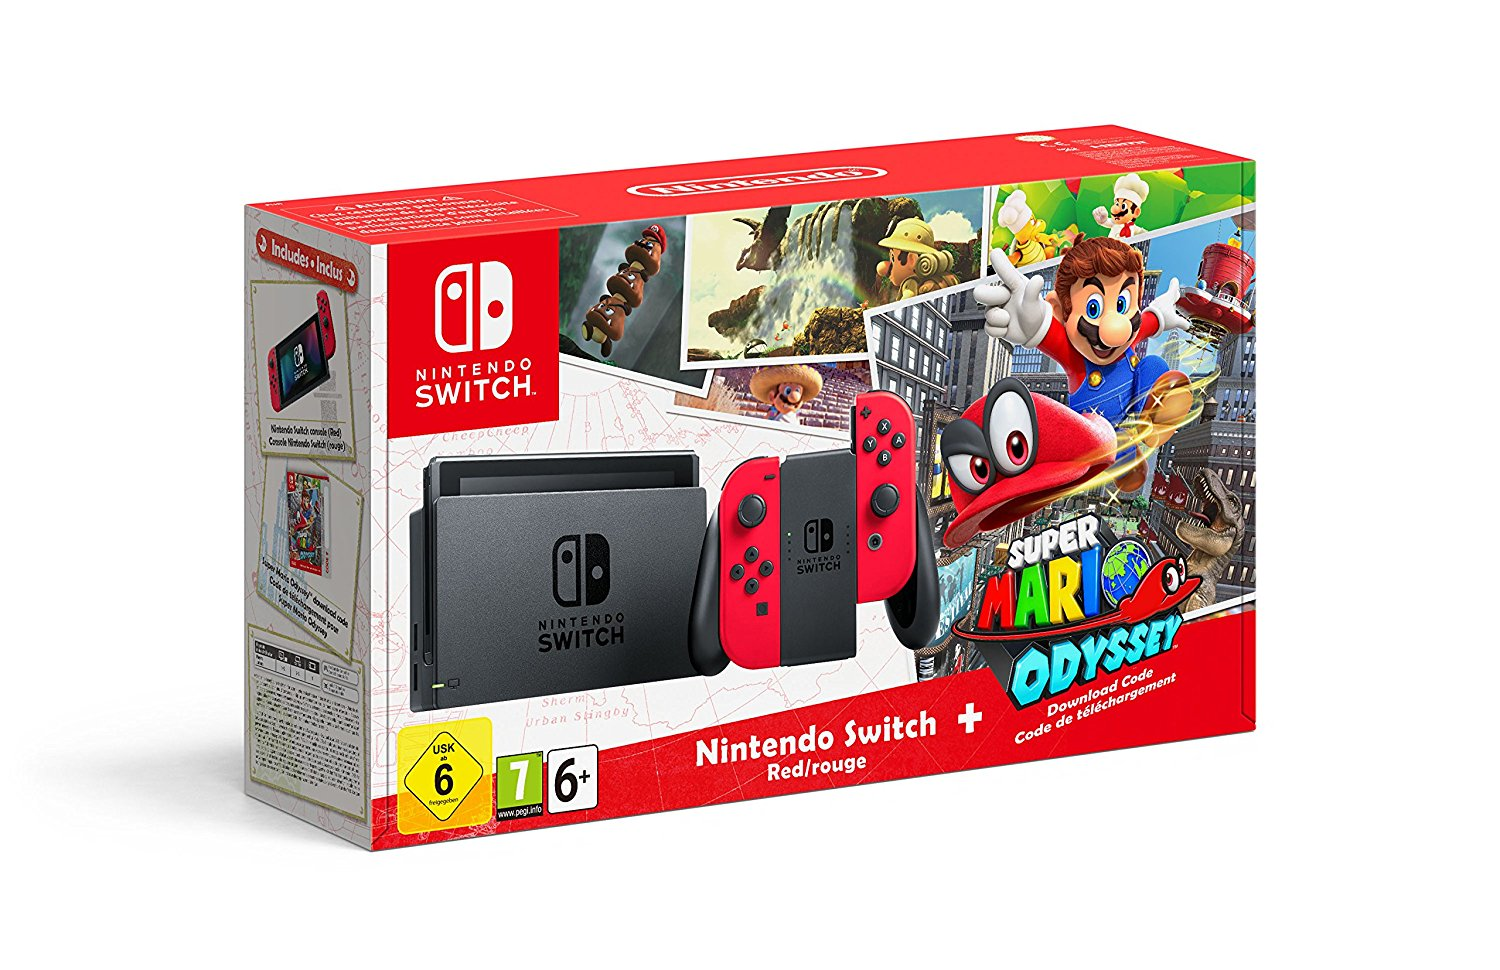 Unboxing the Super Mario Odyssey Switch bundle